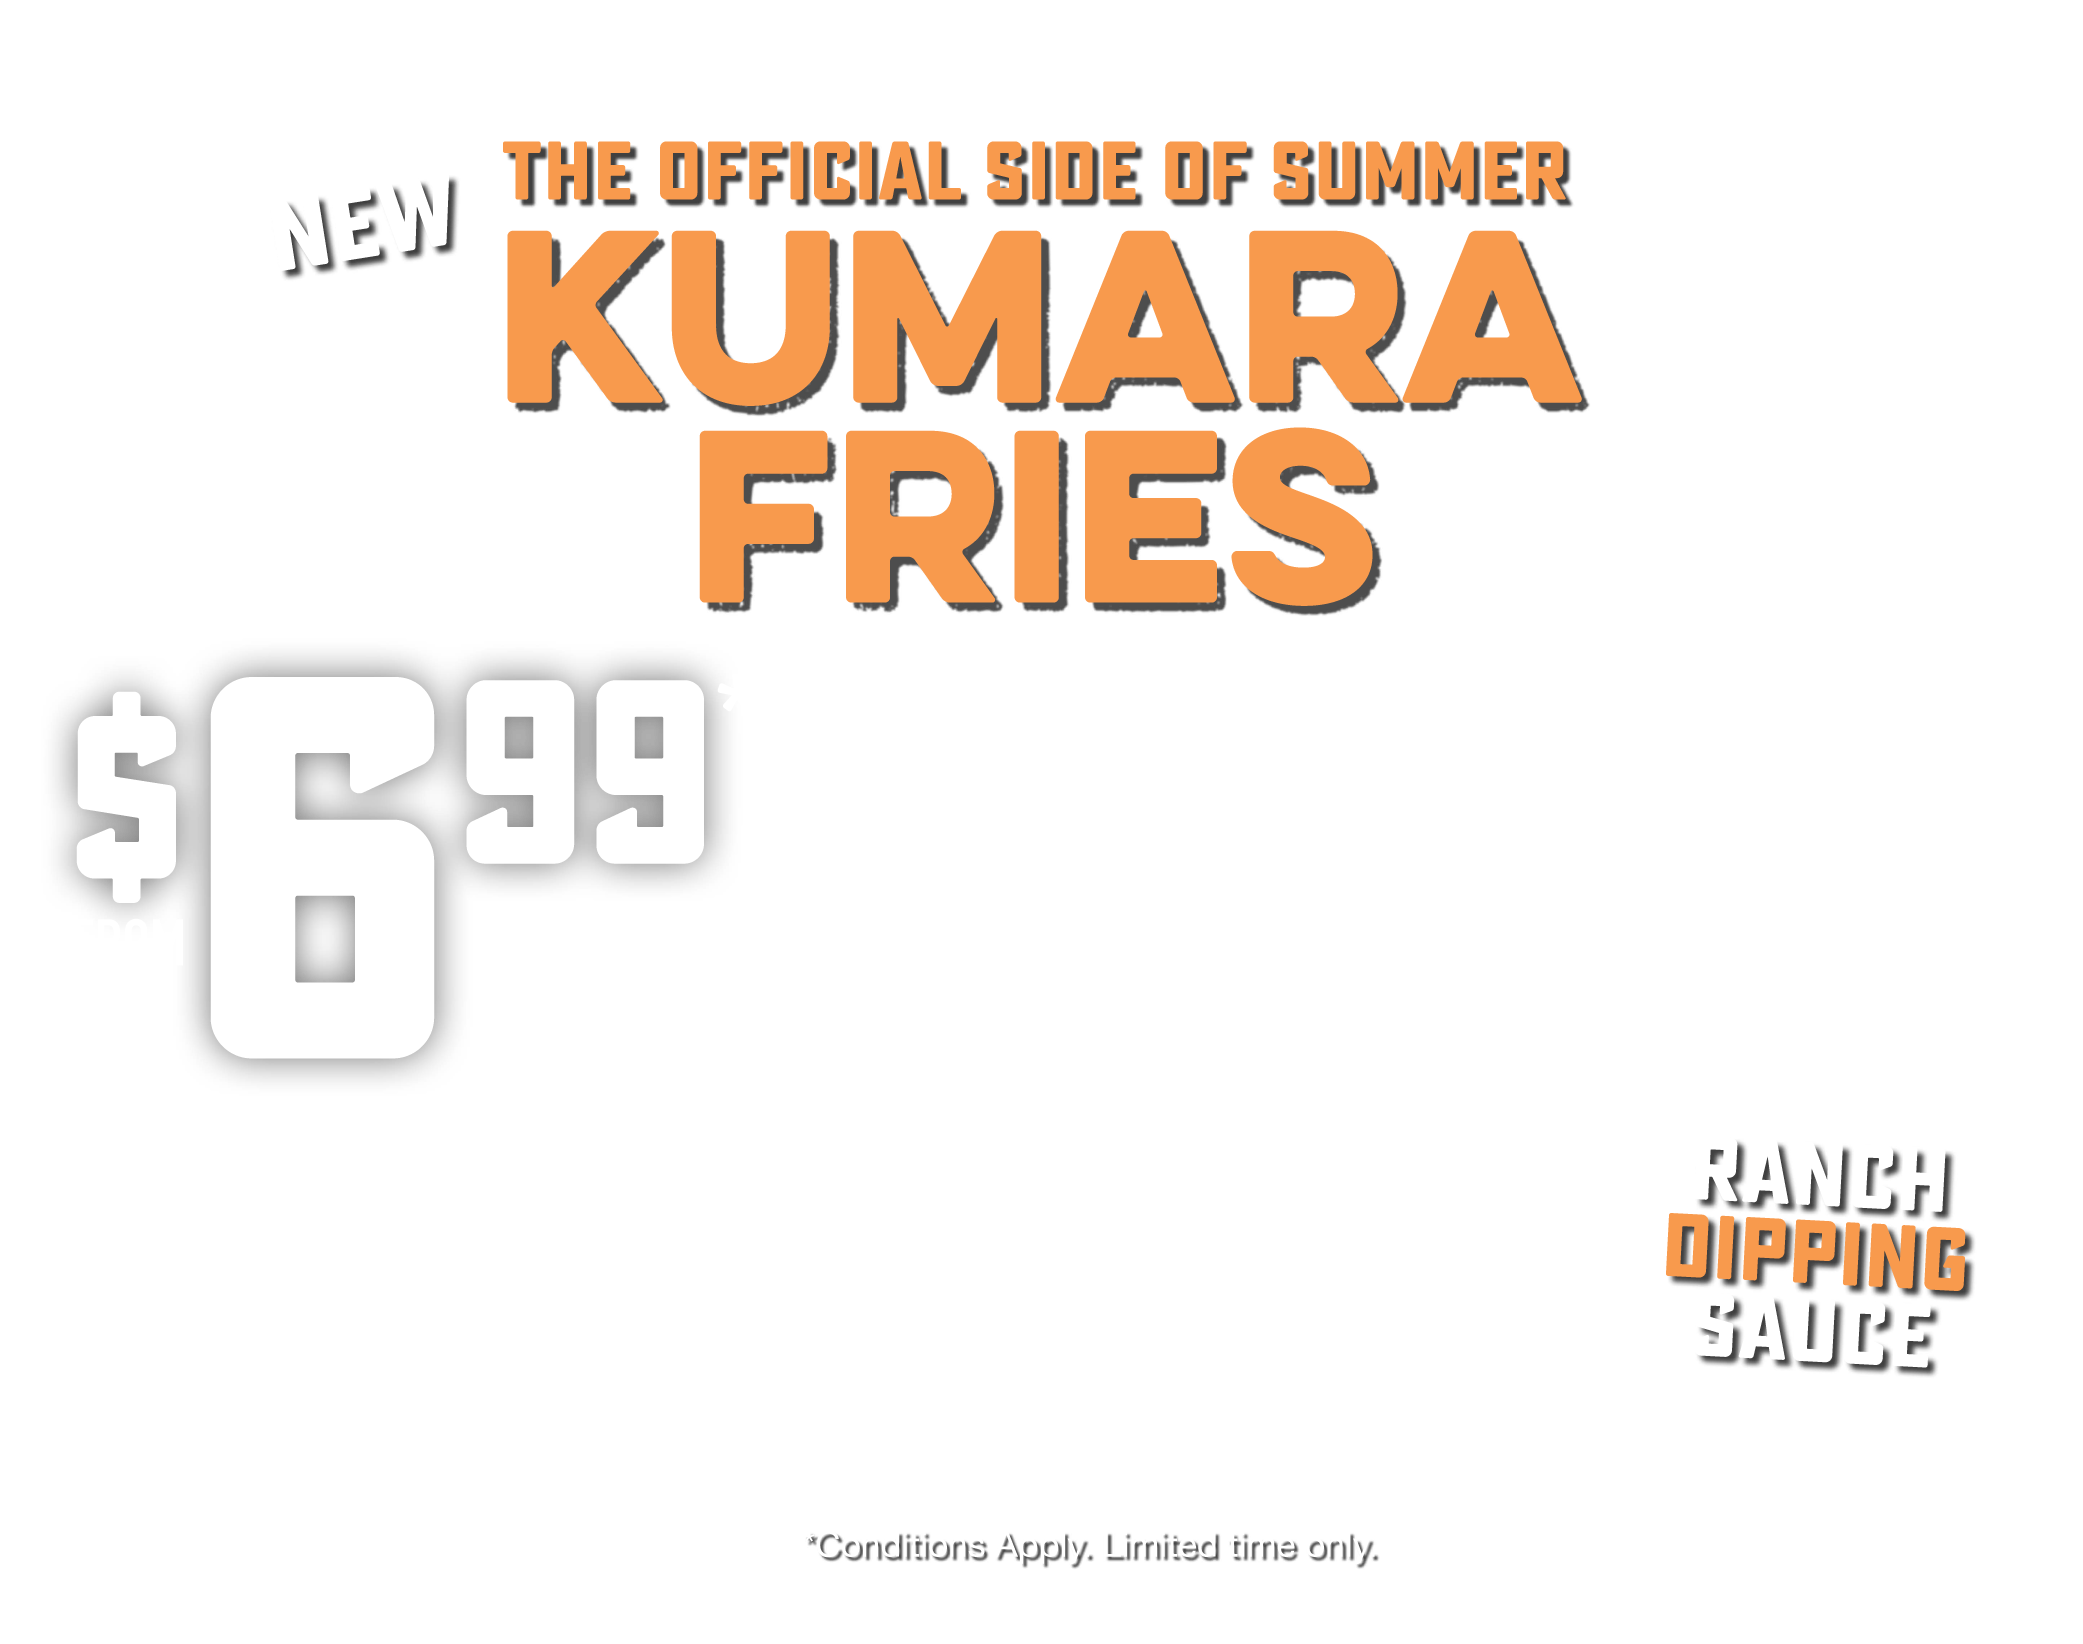 NZ-KUMARA-FRIES-2018-TRANSLITE.png